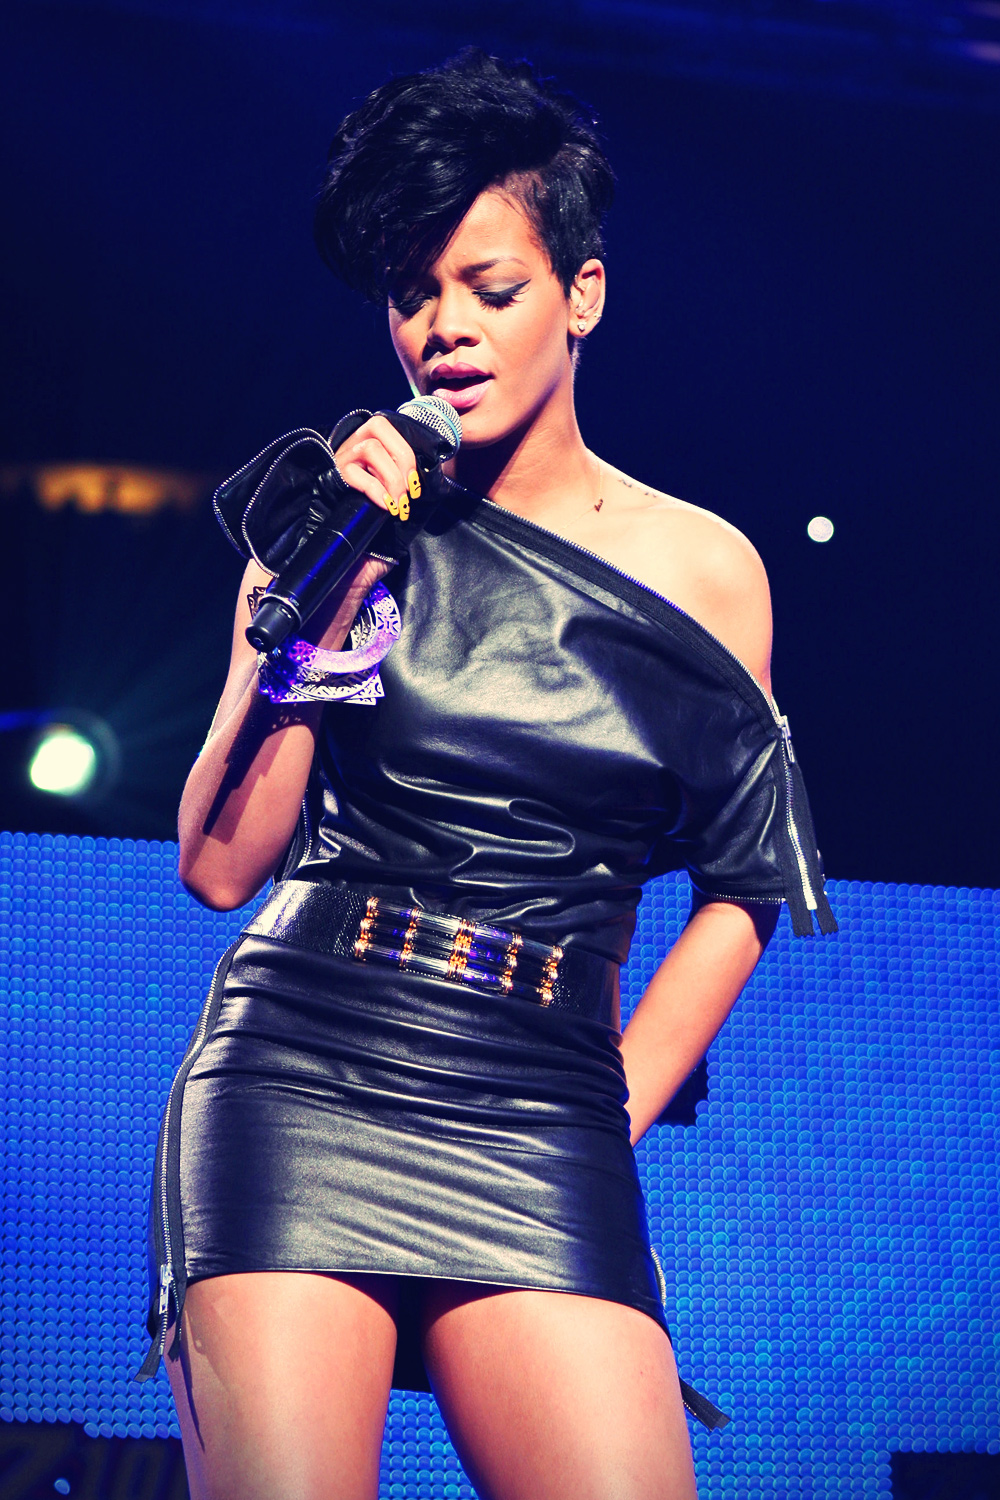 Rihanna performs at the Z100 Jingle Ball